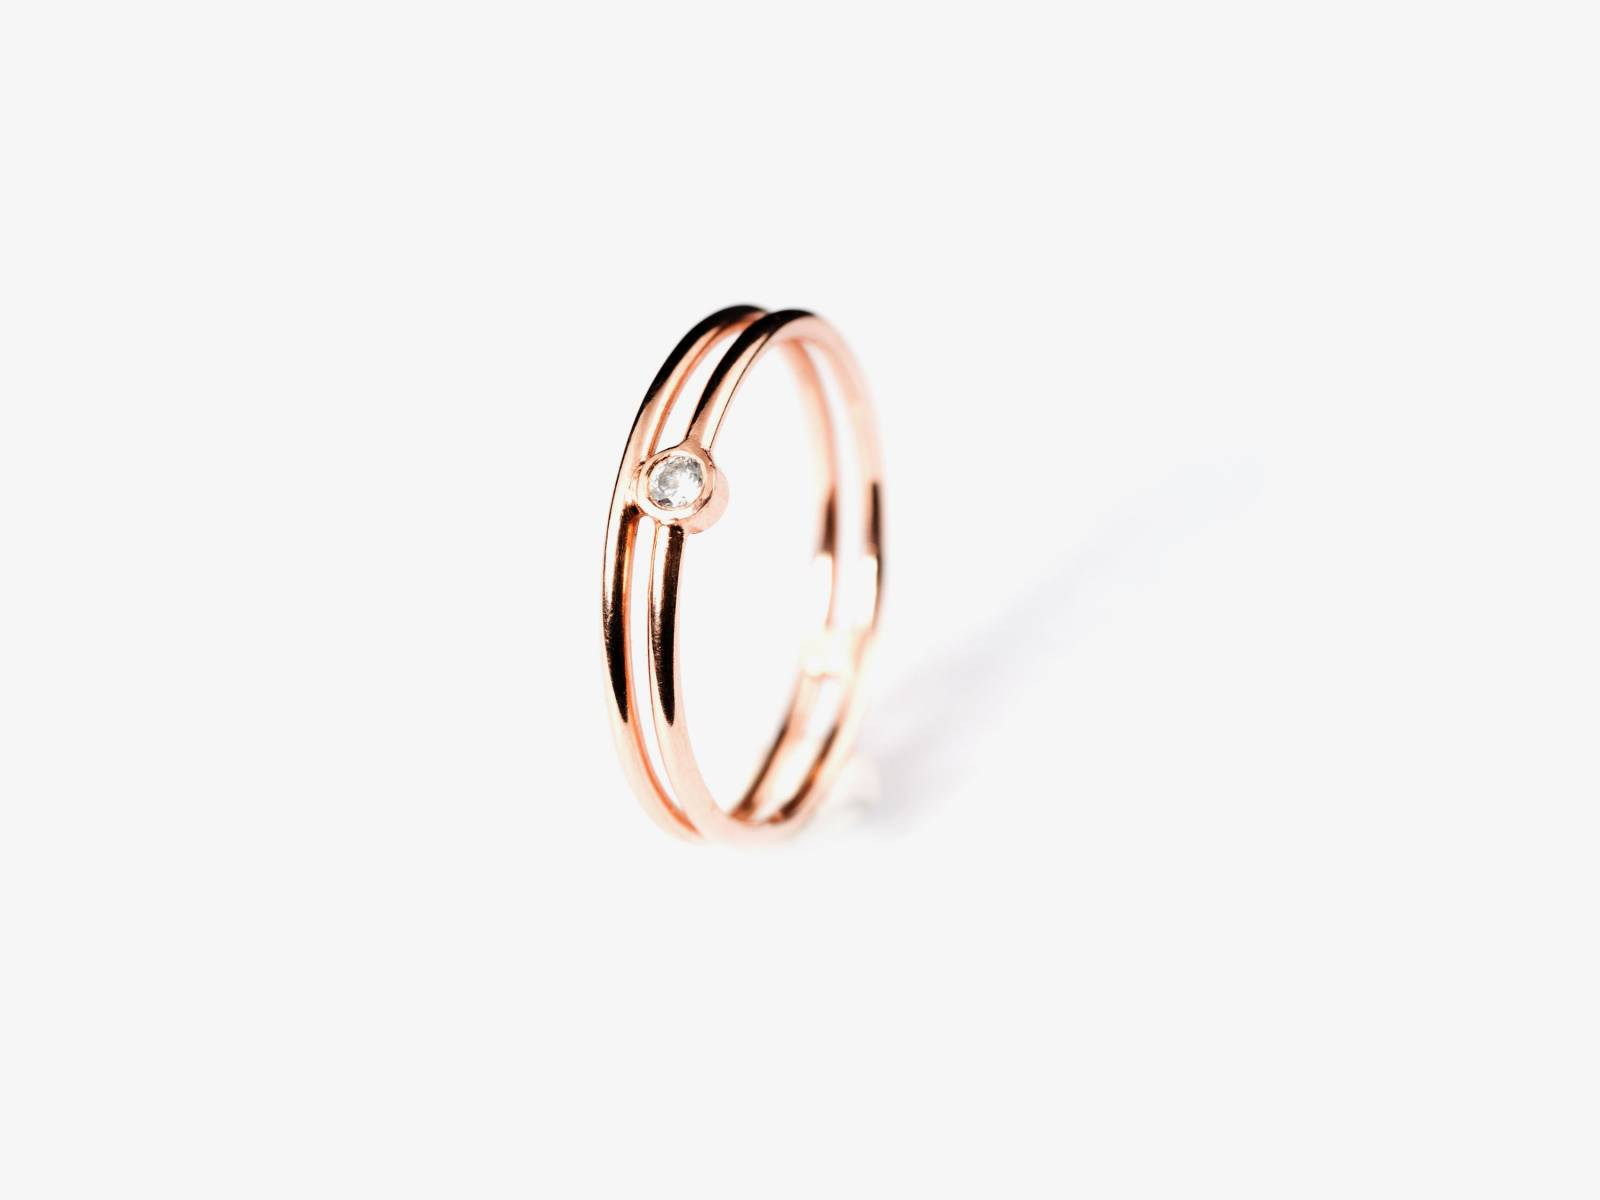 LUX_Double lux ring - pink gold - engagement - diamond